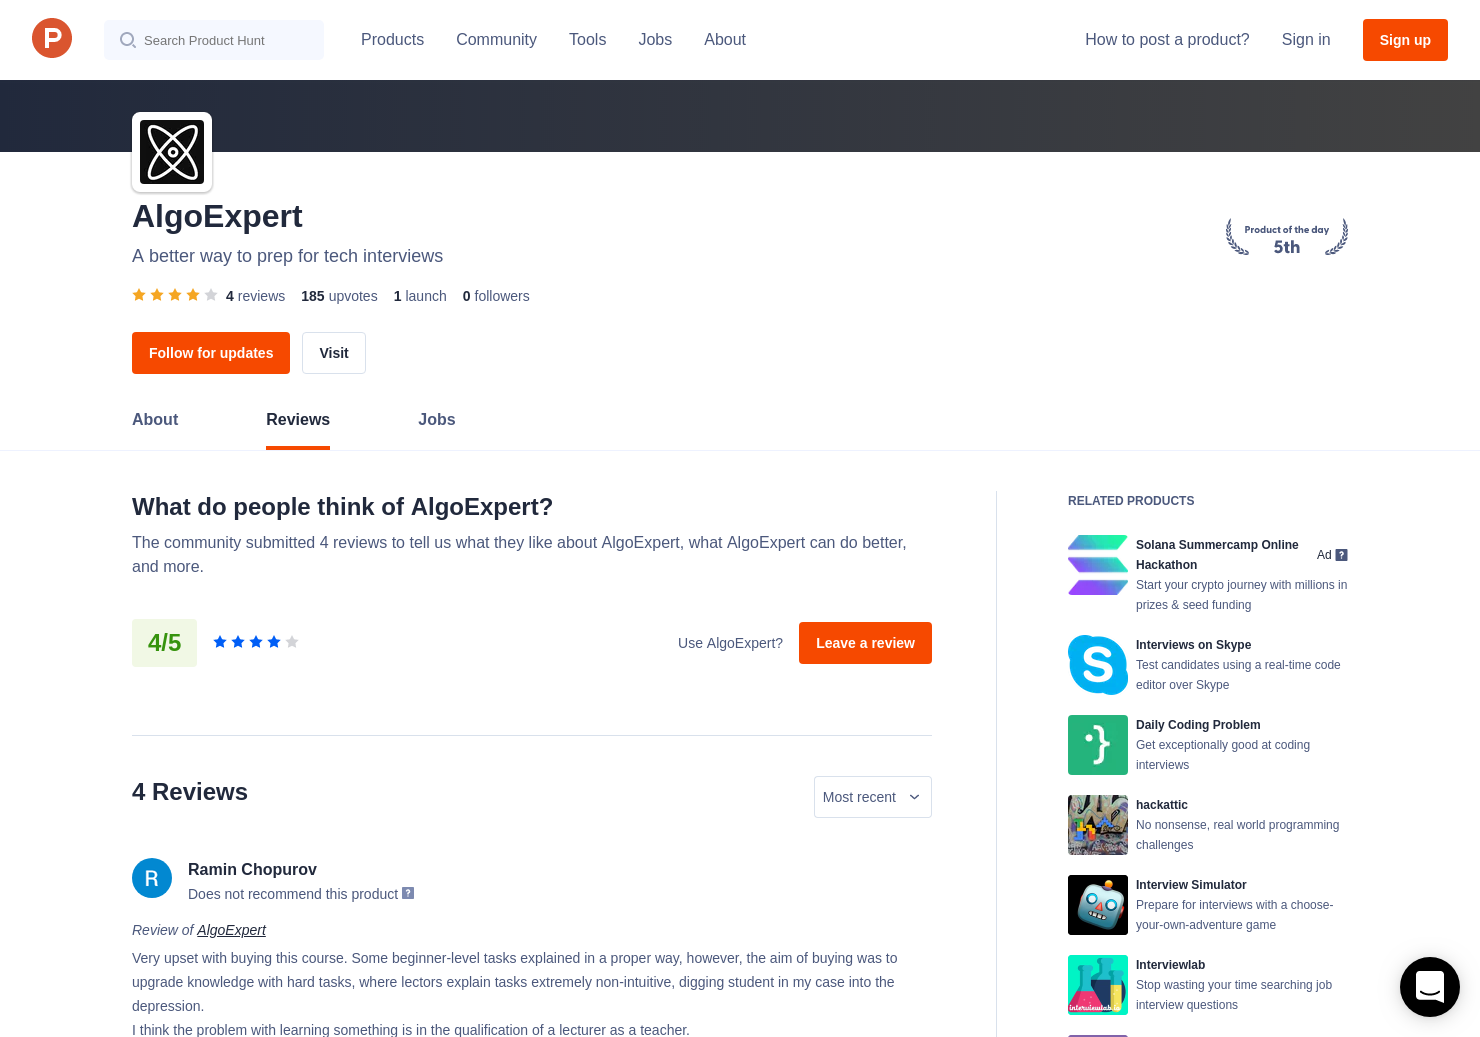 2 AlgoExpert Reviews - Pros, Cons and Rating | Product Hunt